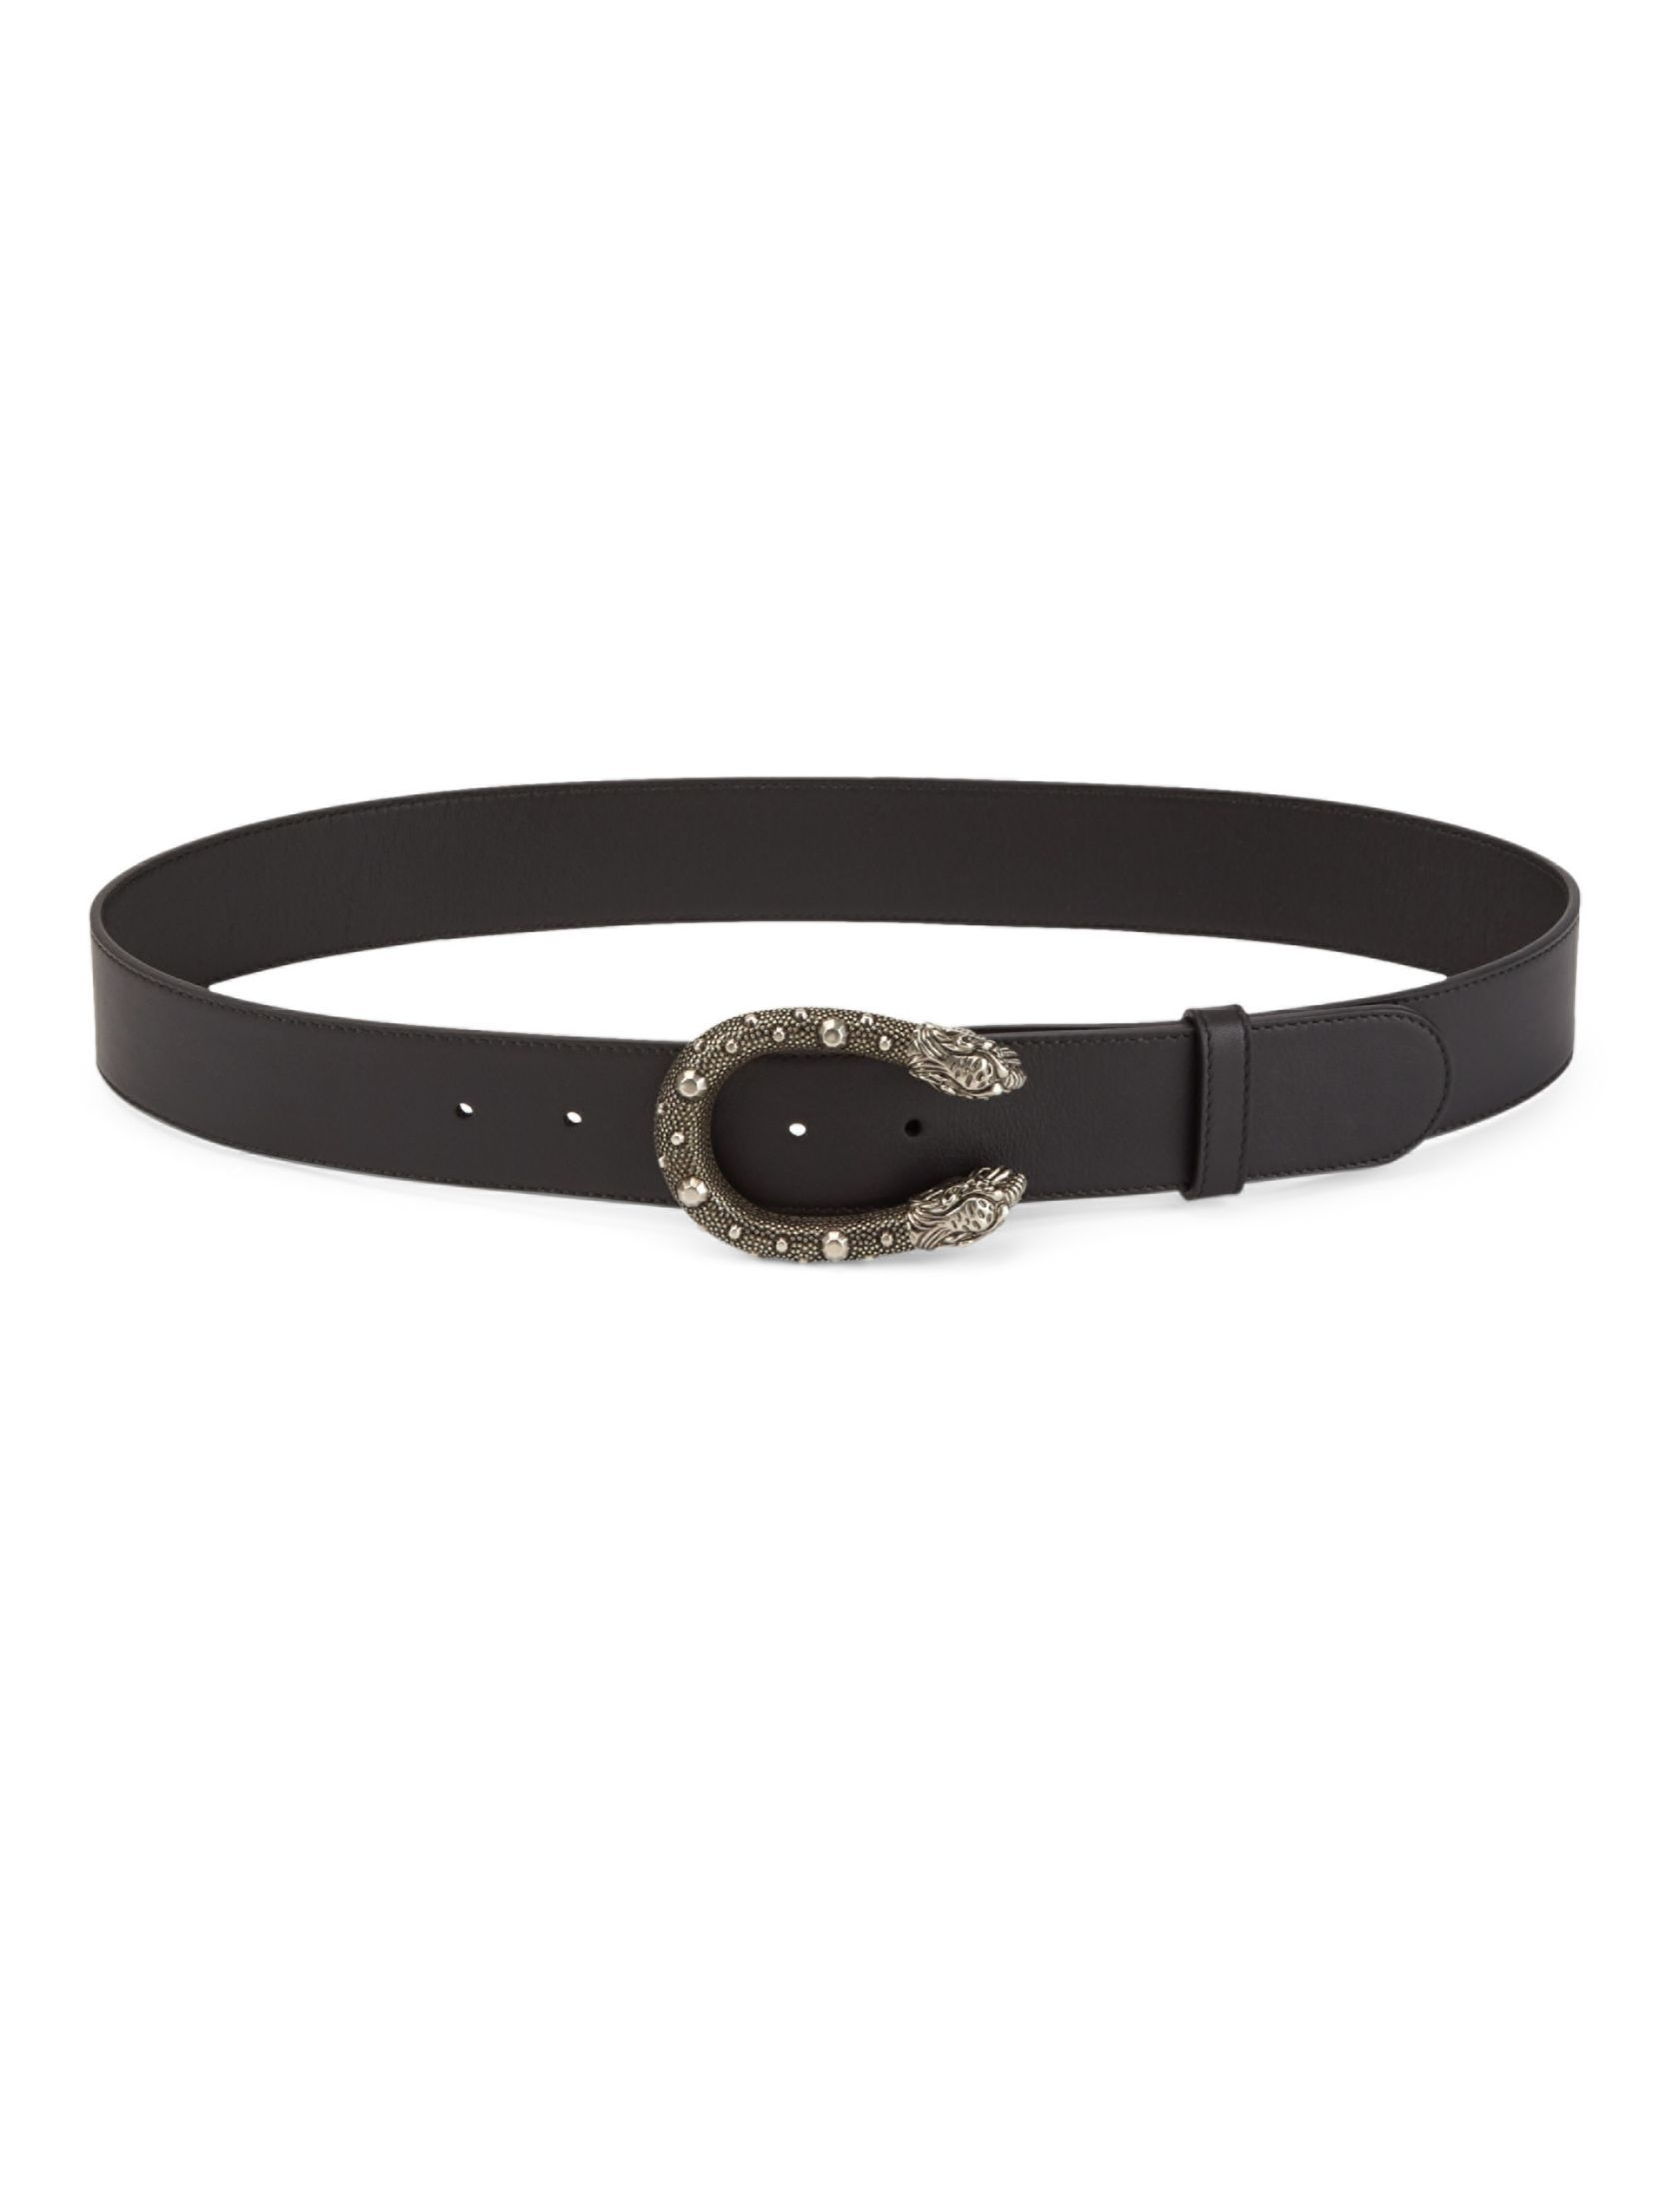 Dionysus leather belt - Black Gucci kBqhPd